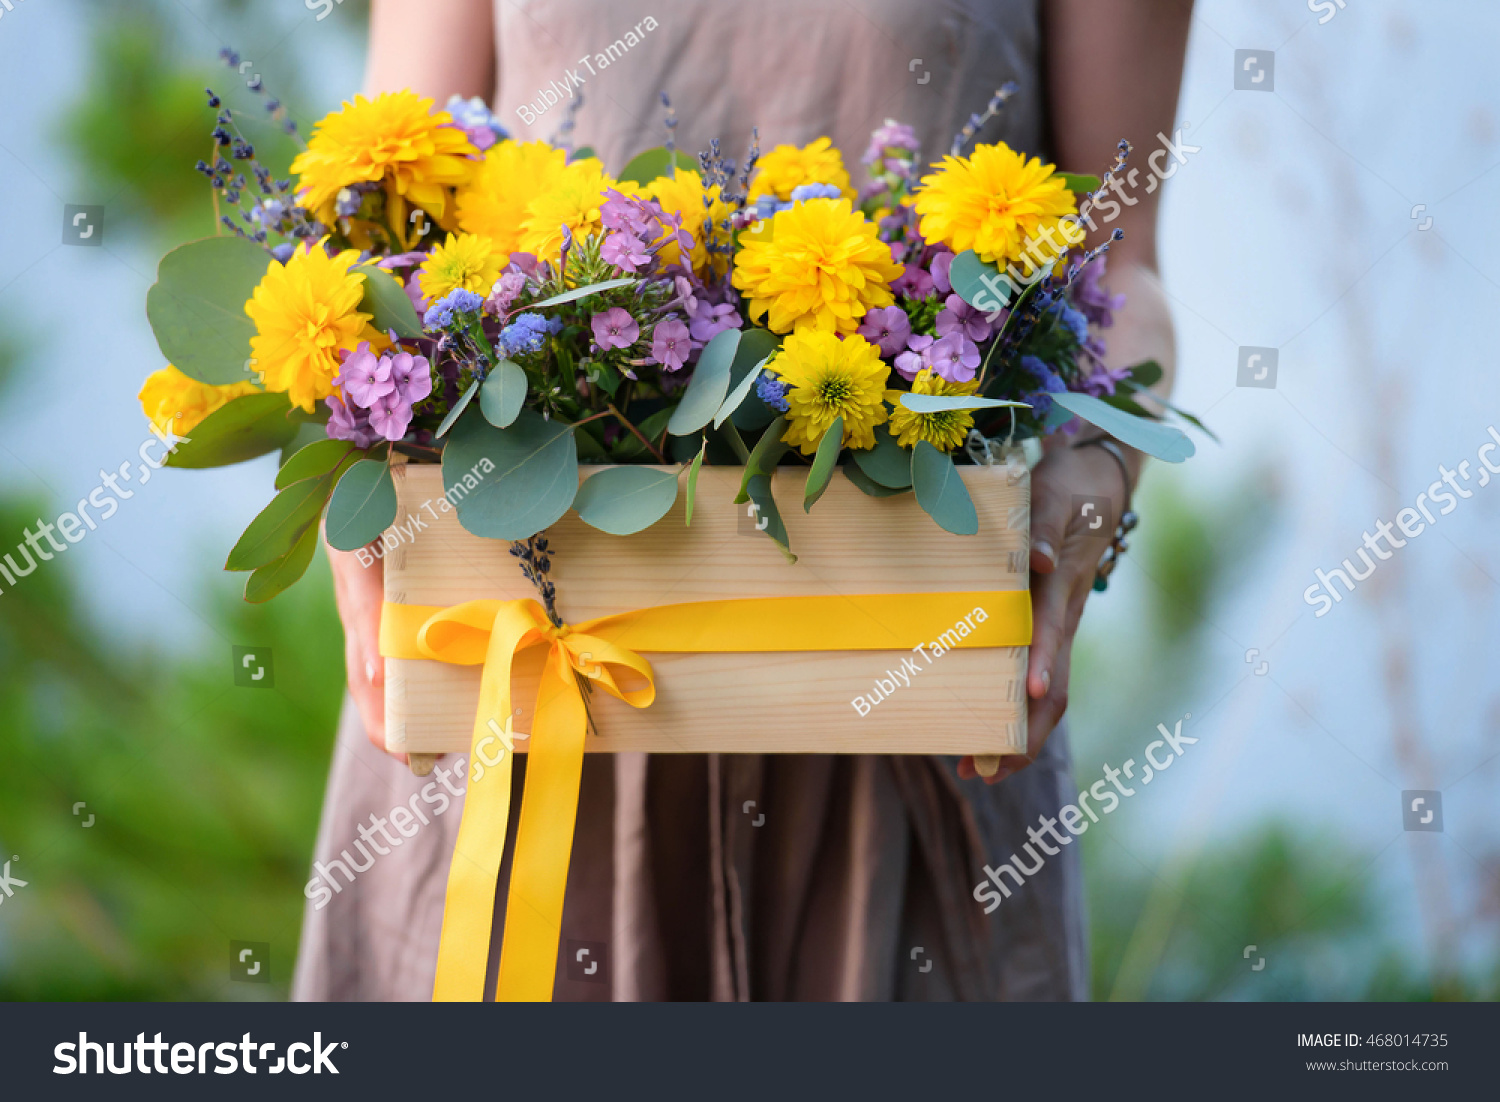 Flower arrangement yellow purple flowers wooden stock photo royalty flower arrangement yellow purple flowers wooden stock photo royalty free 468014735 shutterstock mightylinksfo